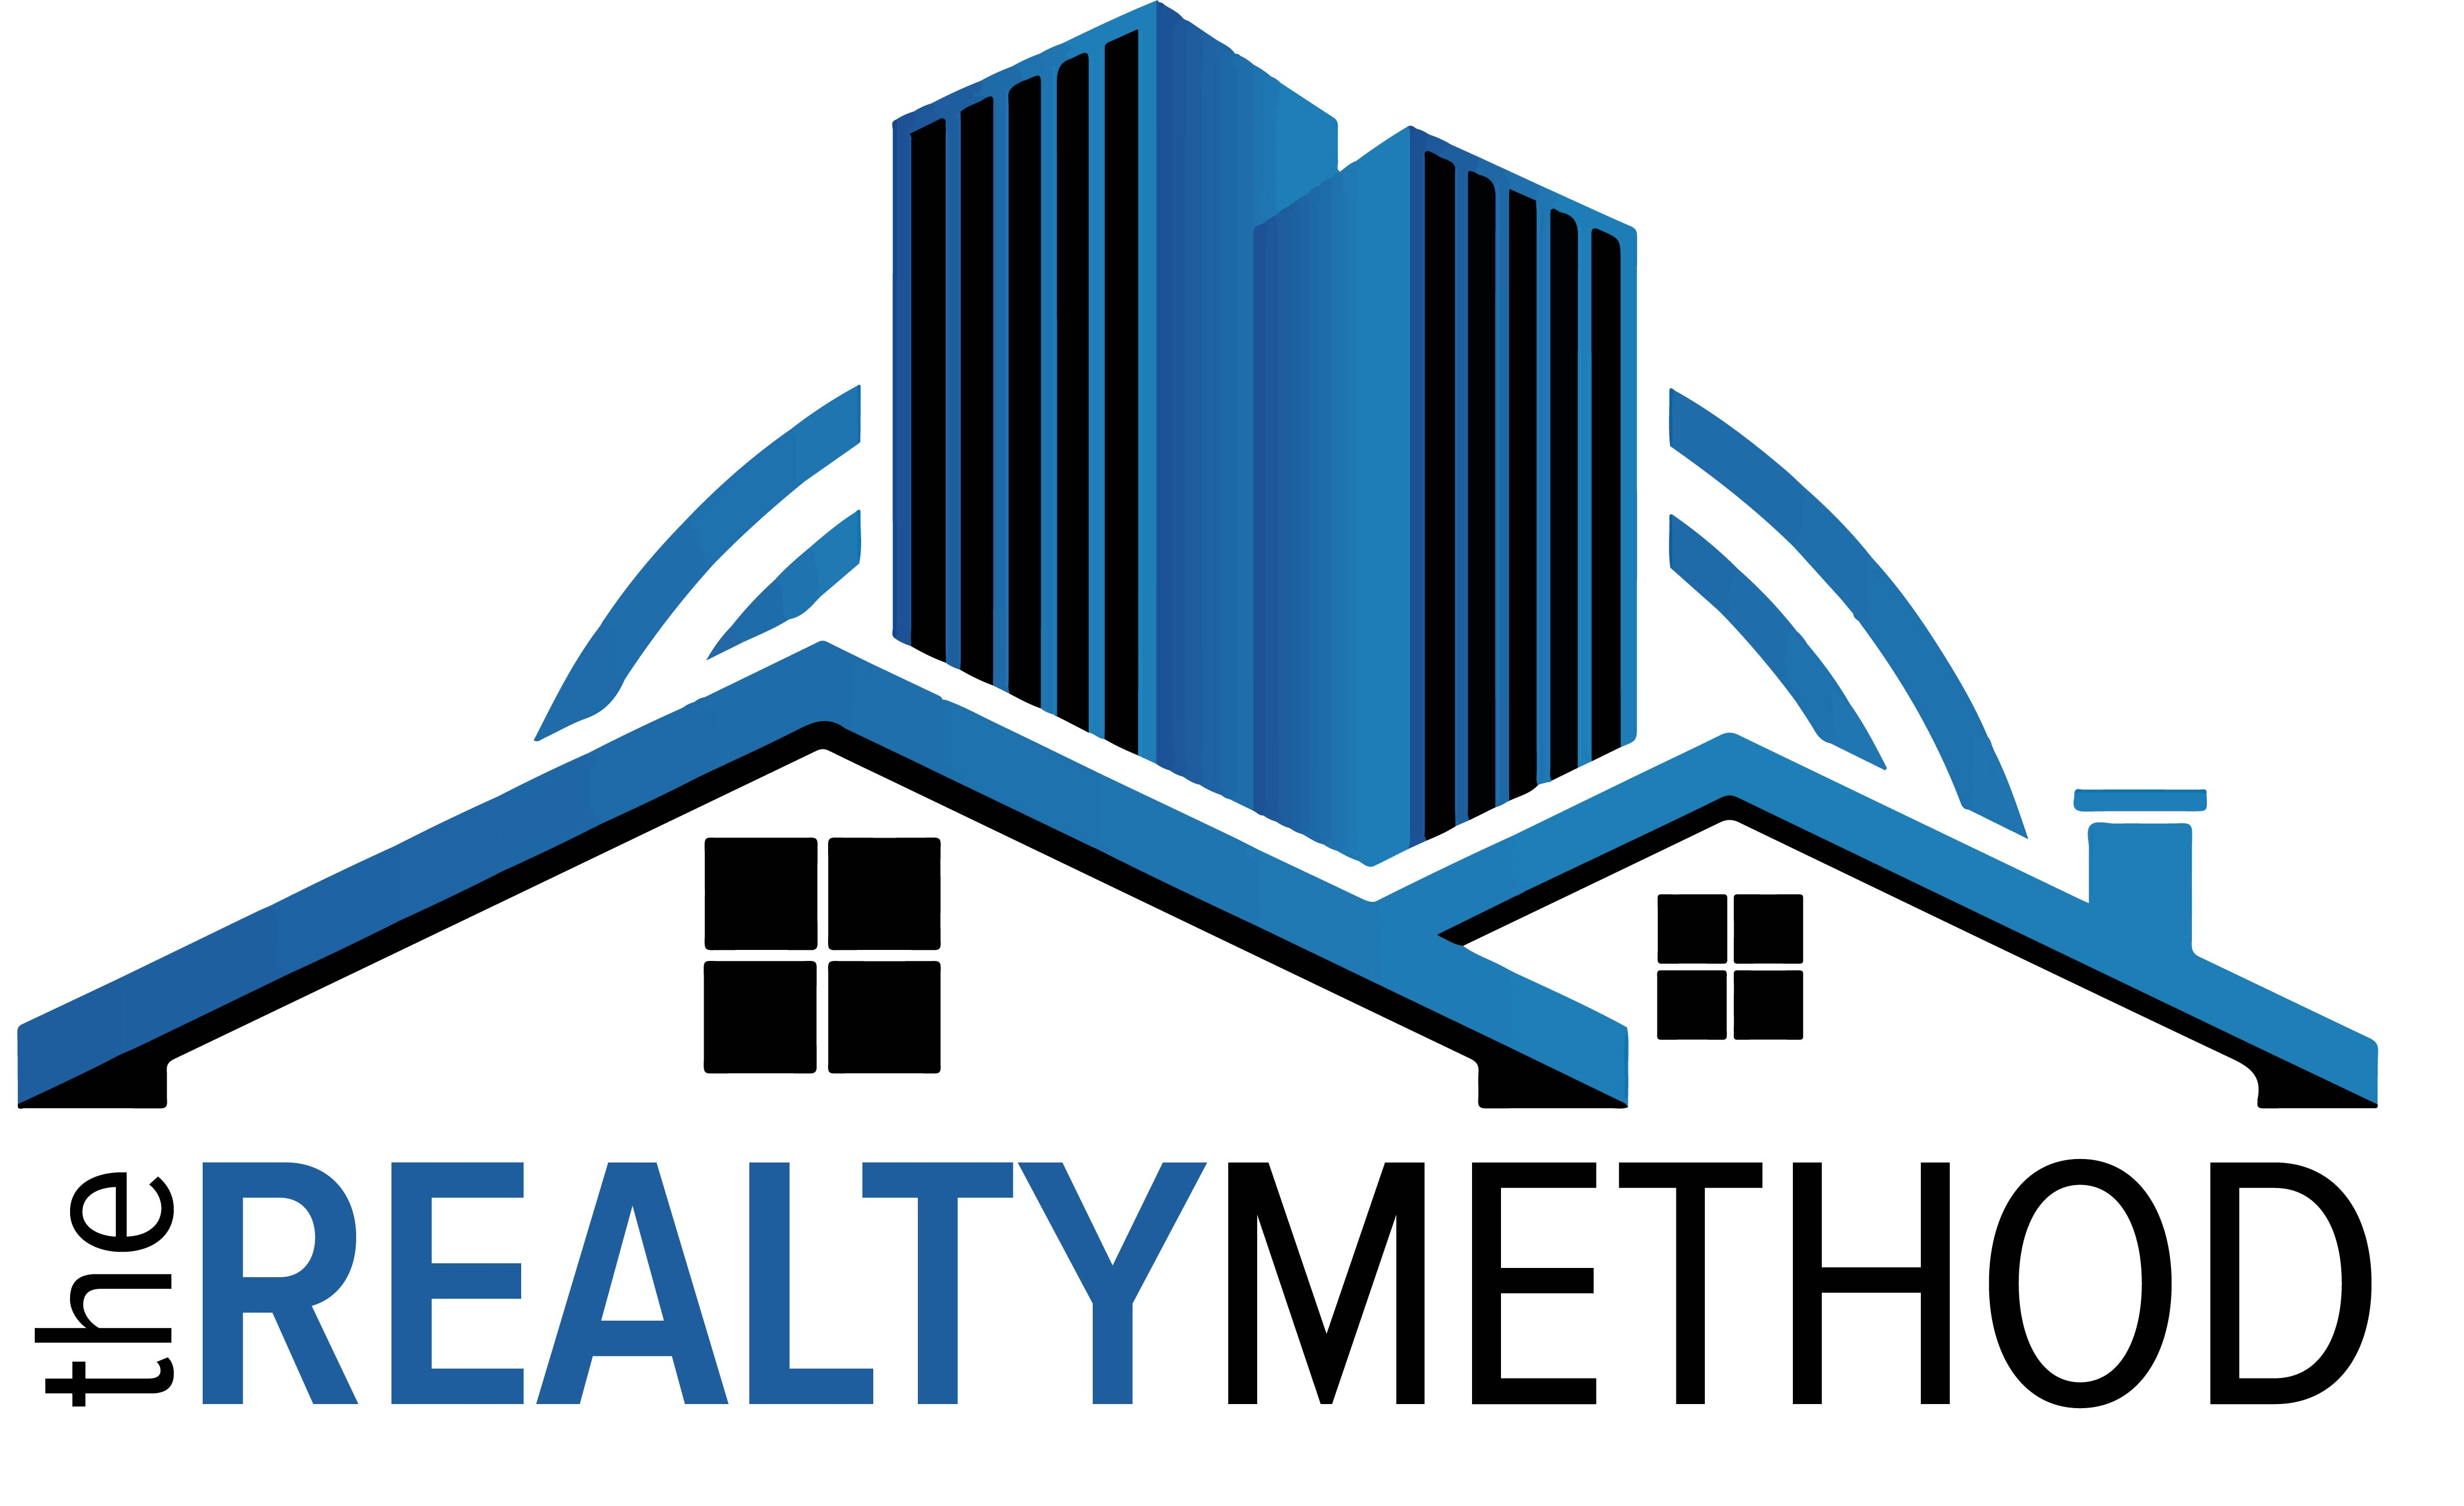 The Realty Method